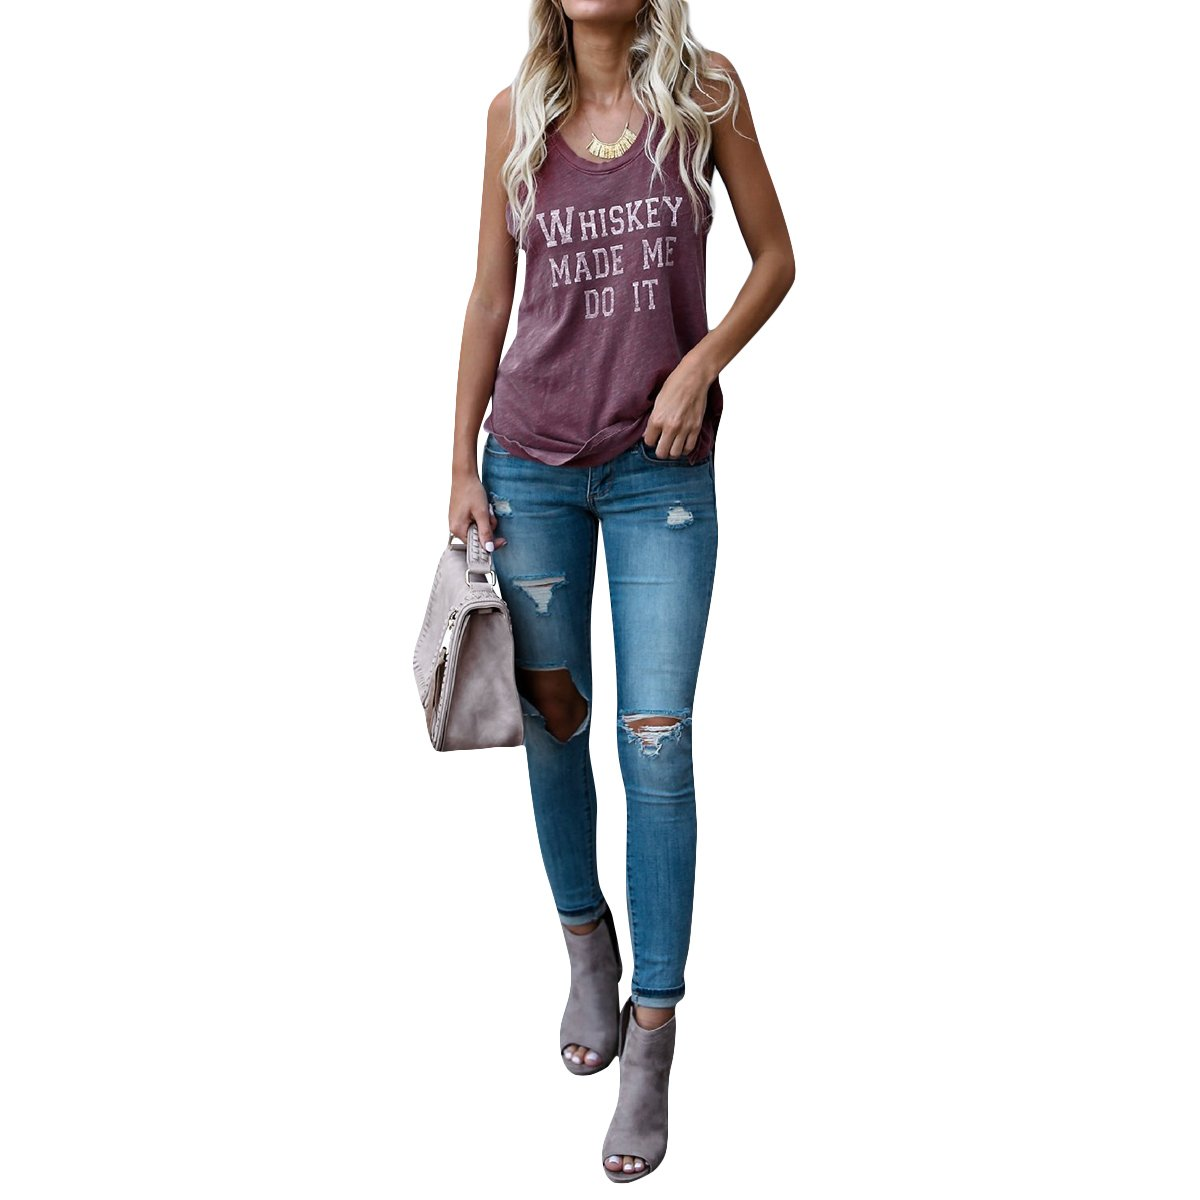 Jahurto Whiskey Made Me Do It Tank Top Women Workout Racerback Camisole Sleeveless Tops